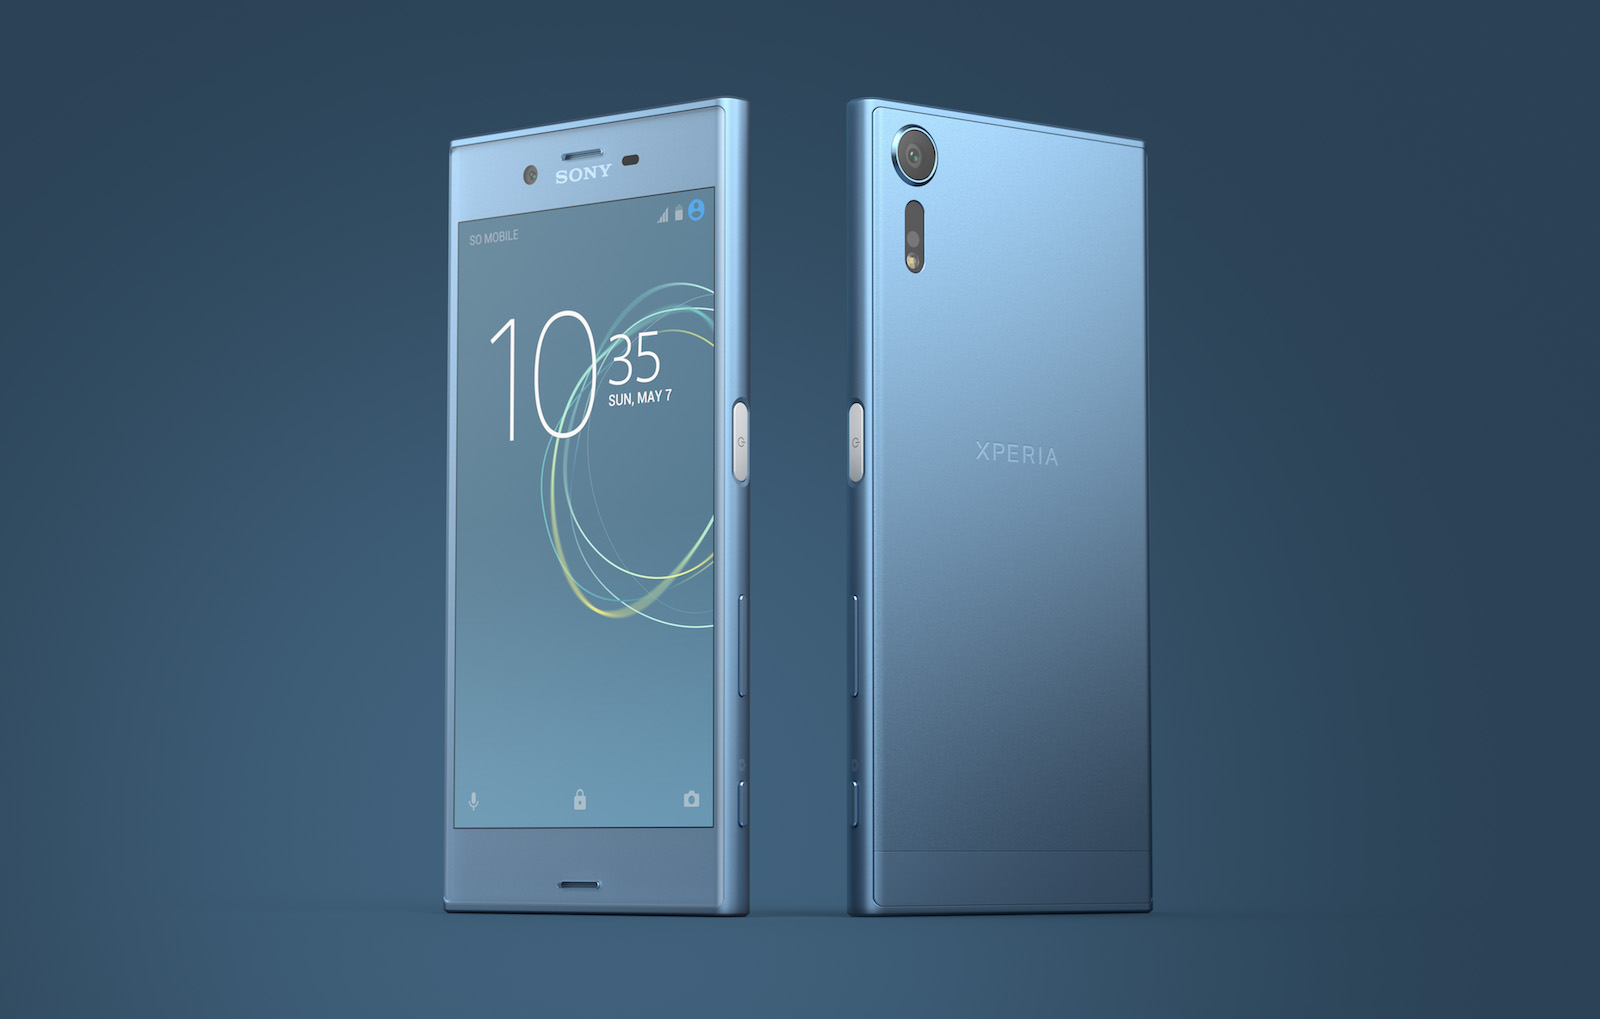 sony s xperia xa1 and xa1 ultra round out its mid range lineup